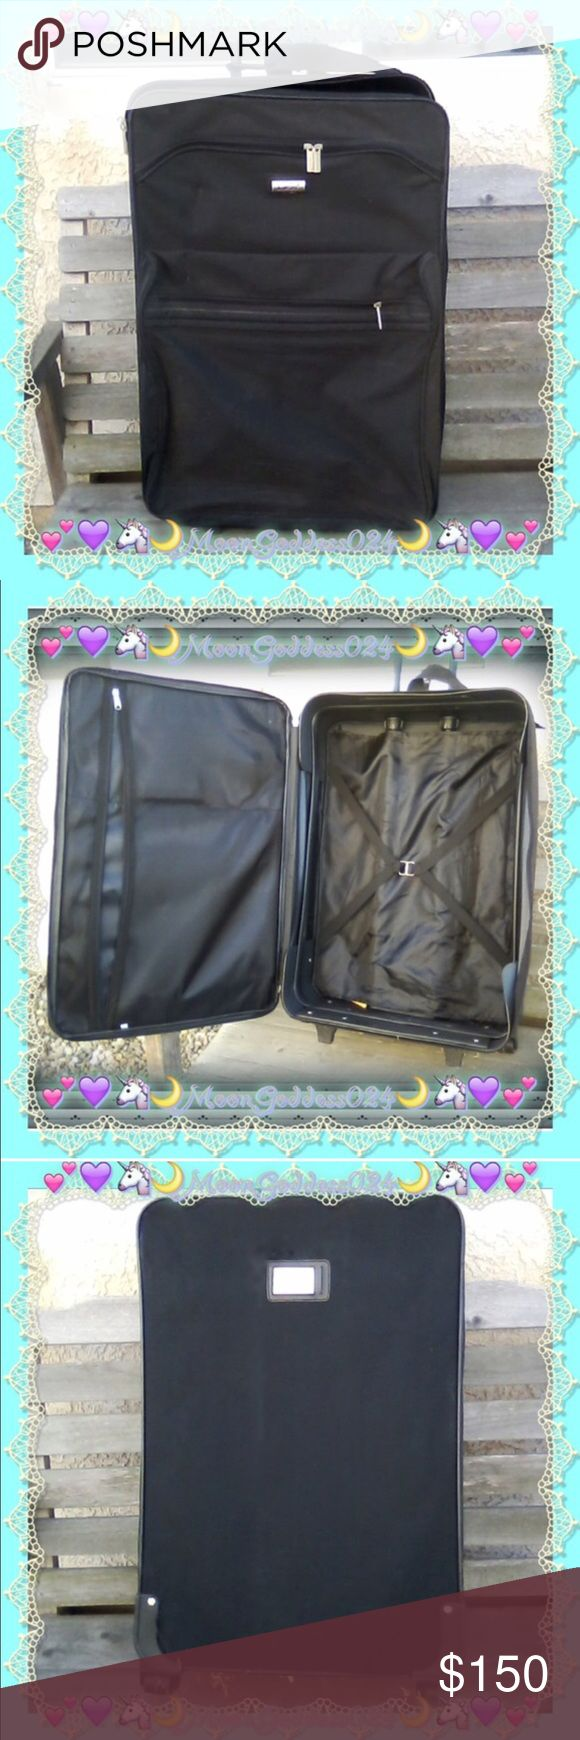 """Lucas EXTRA Large Roller Suitcase ~Bag*Set Lucas EXTRA Large Roller Suitcase ~Bag*Set  ~*Observe photos for best view of condition.✌*~     APPROXIMATE MEASUREMENTS::  Height= 27"""" Length=18"""" Width= 10""""   Like NEW!! Just may need a damp cloth taken to it from it being kept away for a little while...  Asking $150 OBO ~ don't be shy to make an offer I can't refuse ☺✌   ~*I also have lots of other travel items if looking for any, contact me :)*~ Lucas Bags Travel Bags"""